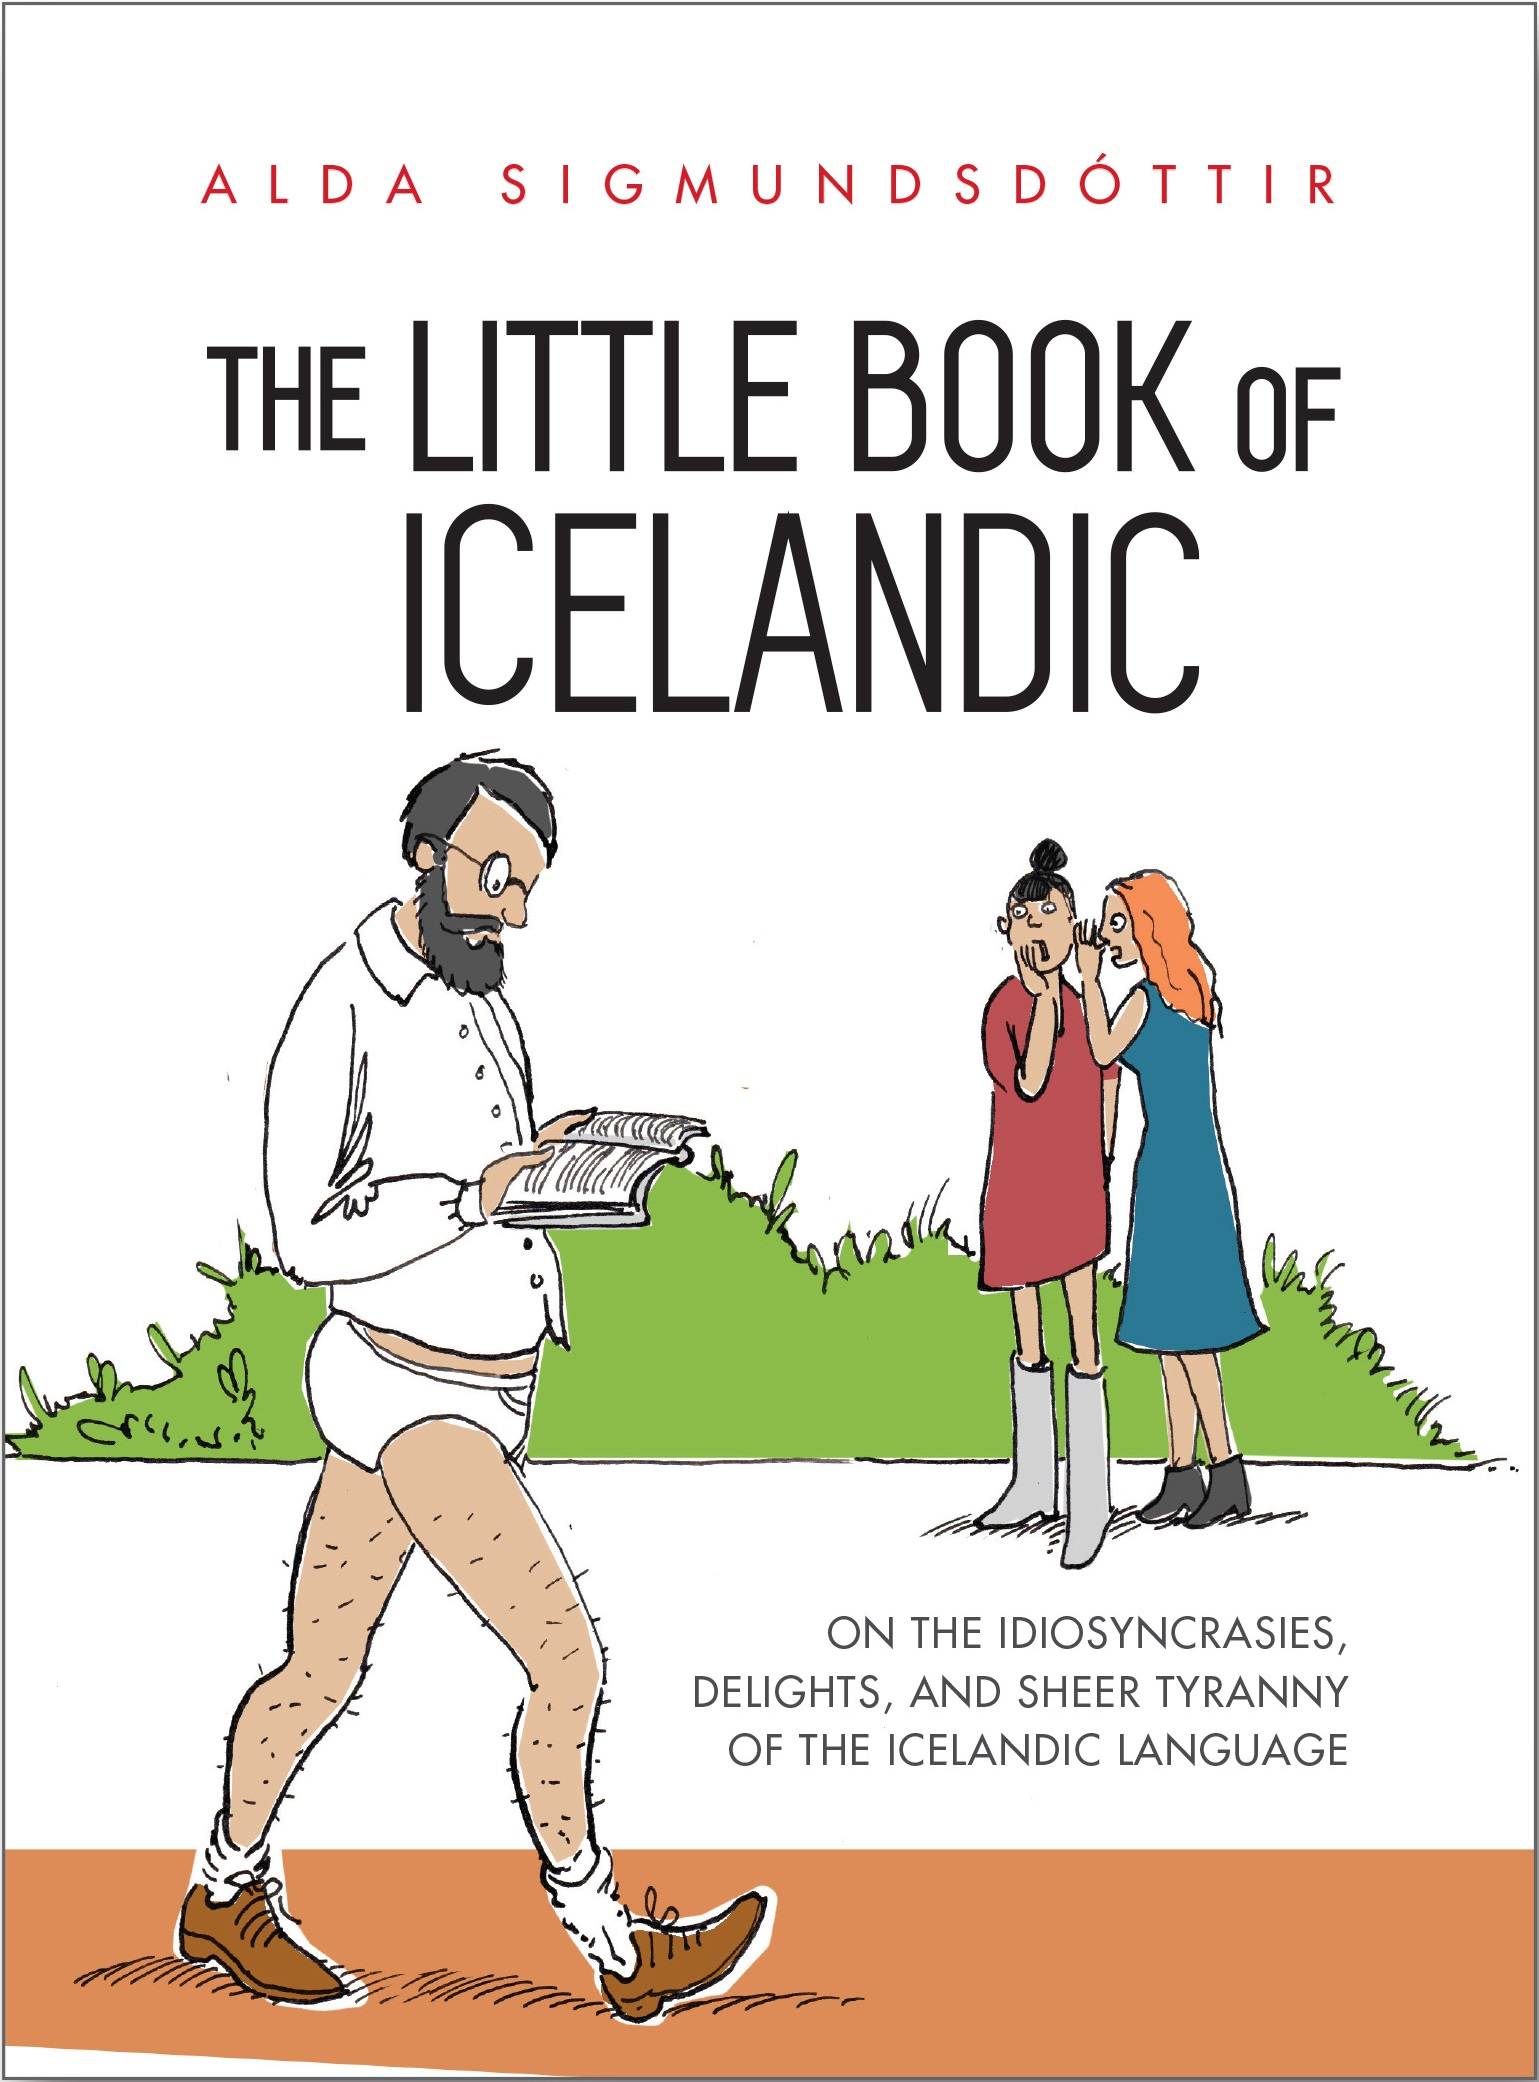 The Little Book of Icelandic